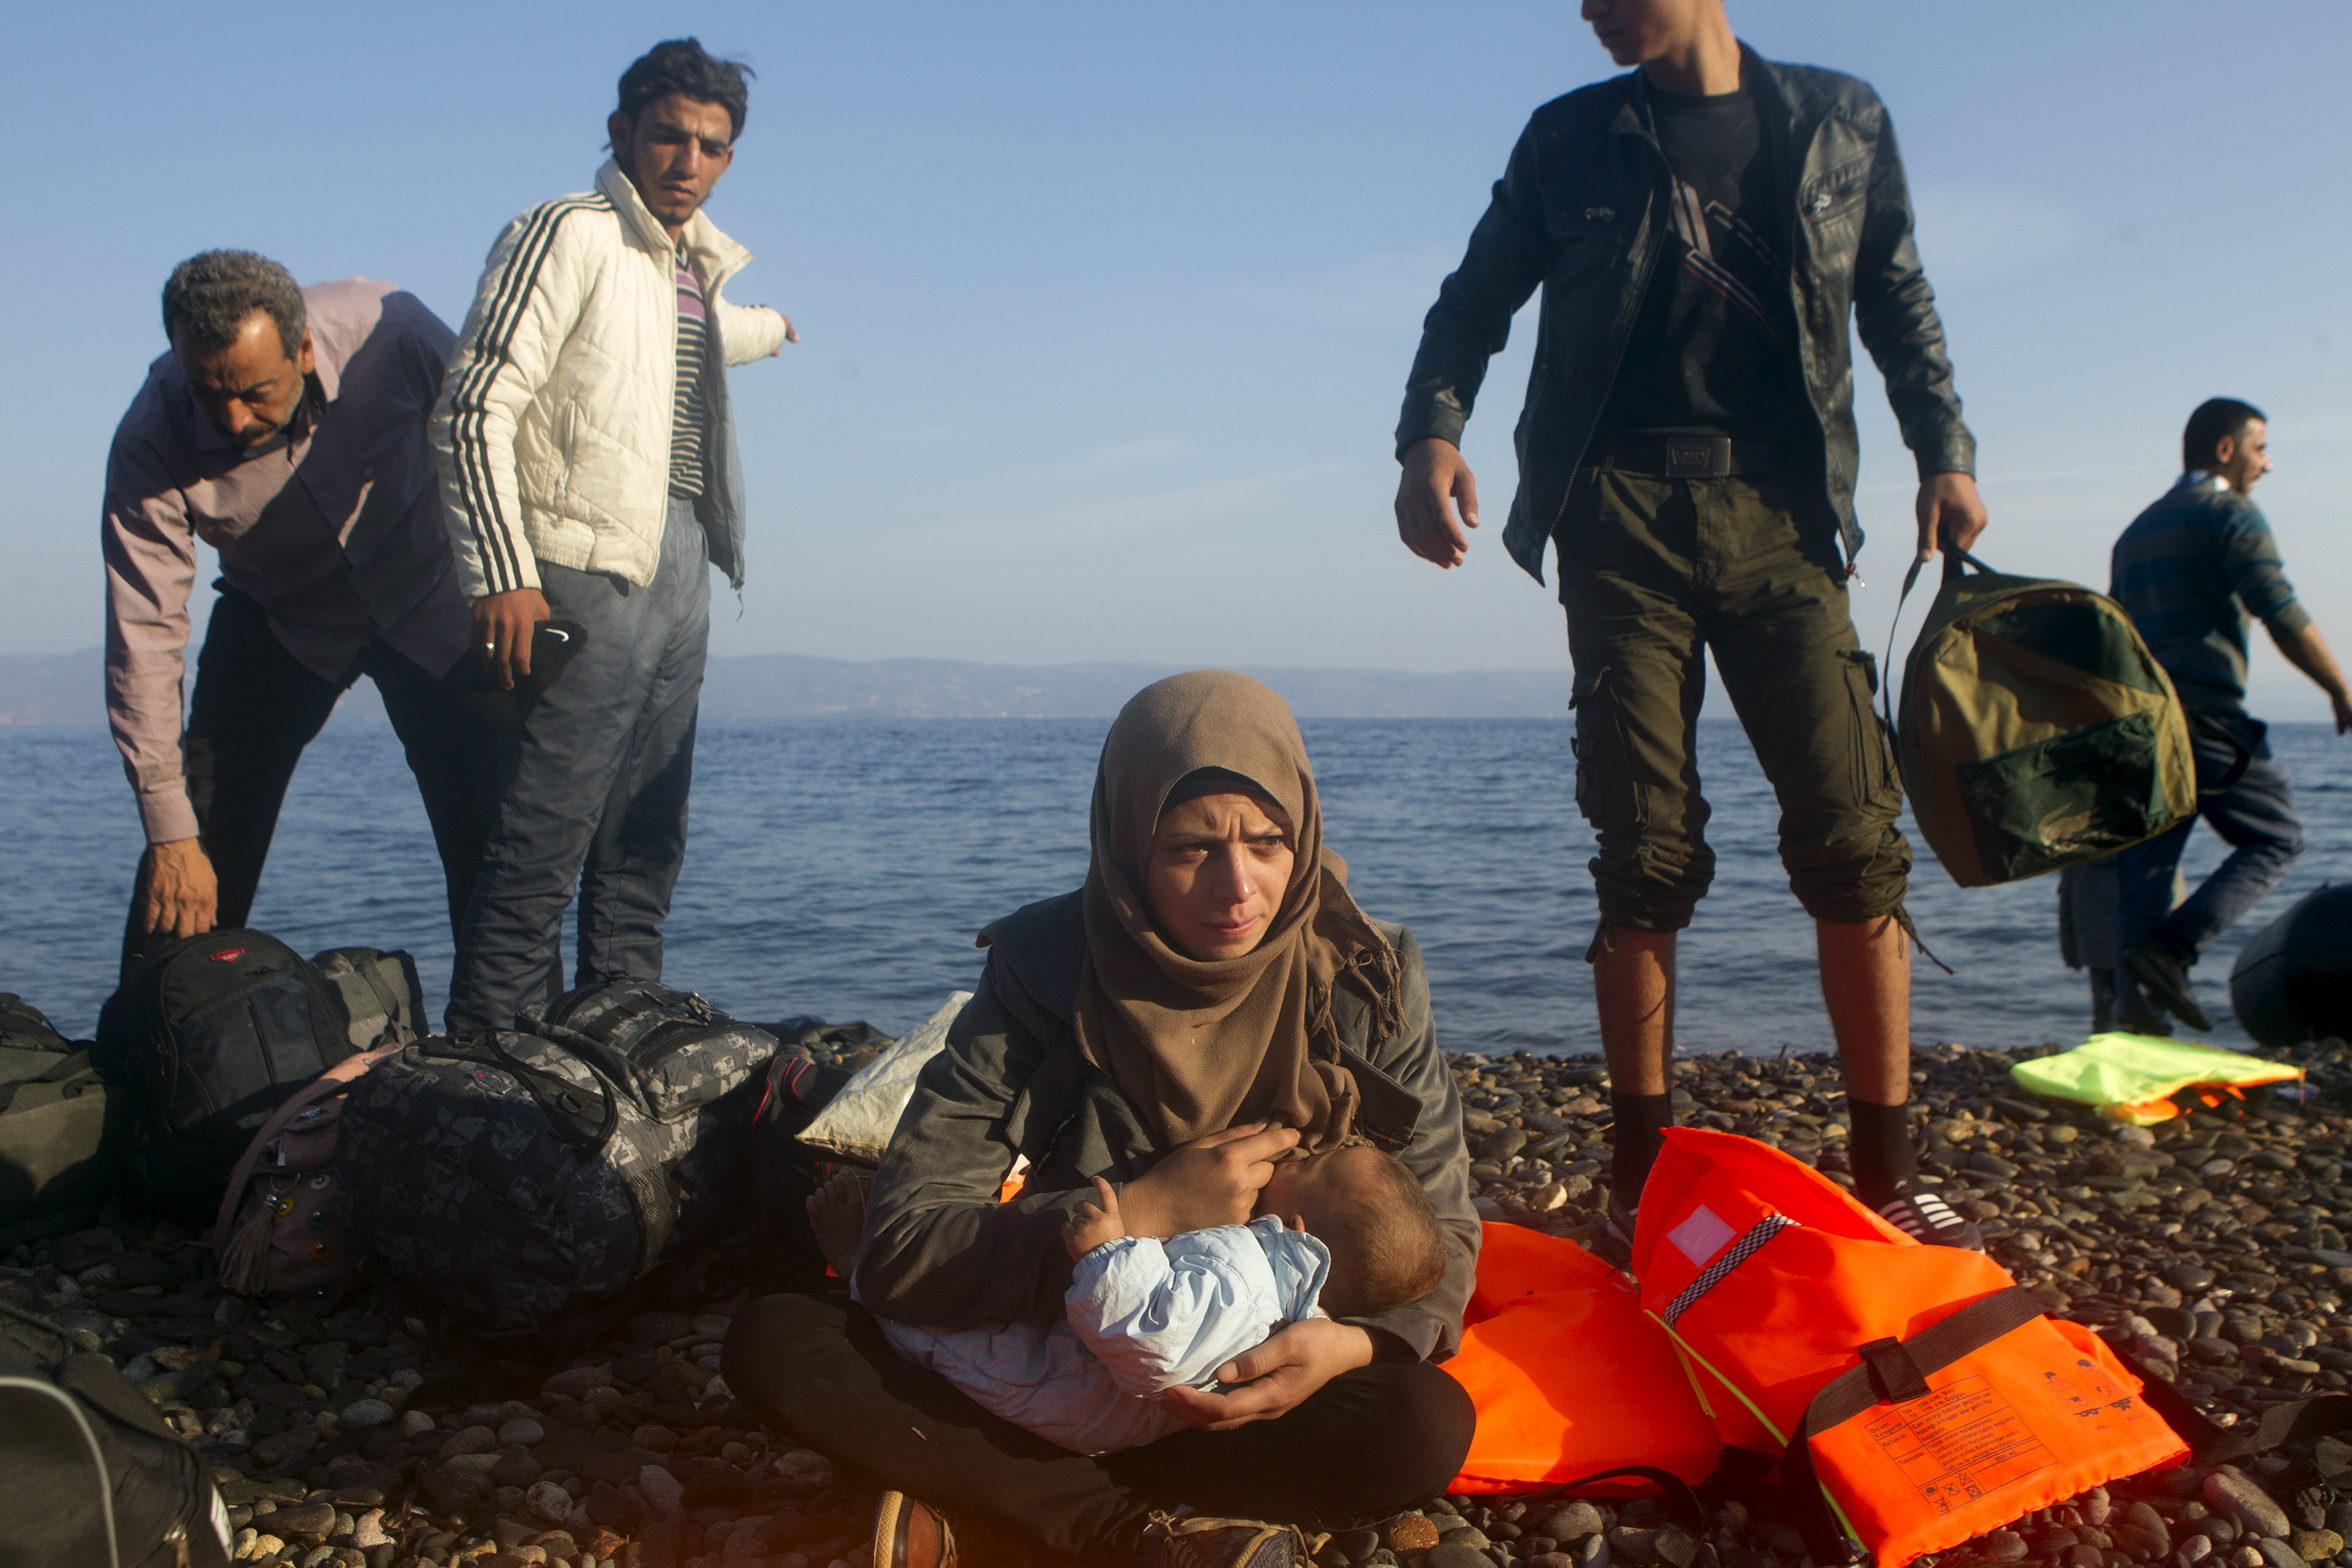 An Iraqi refugee (C) breastfeeds her baby as refugees and migrants arrive on an overcrowded dinghy on the Greek island of Lesbos, after crossing a part of the Aegean Sea from the Turkish coast, October 4, 2015. Refugee and migrant arrivals to Greece this year will soon reach 400,000, according to the UN Refugee Agency (UNHCR). REUTERS/Dimitris Michalakis